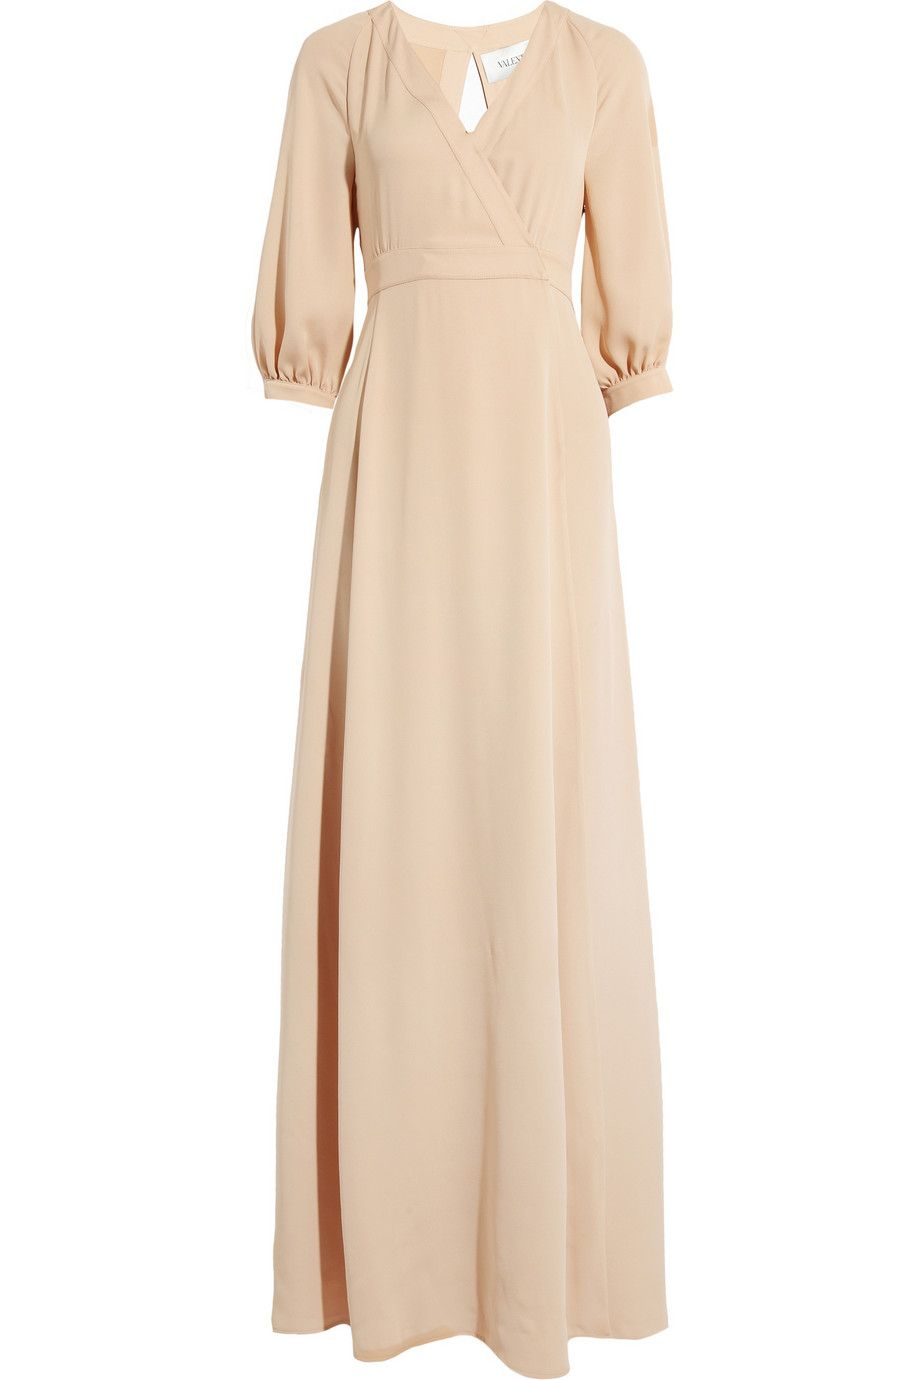 Valentino silktwill gown netaportercom fashion u clothing